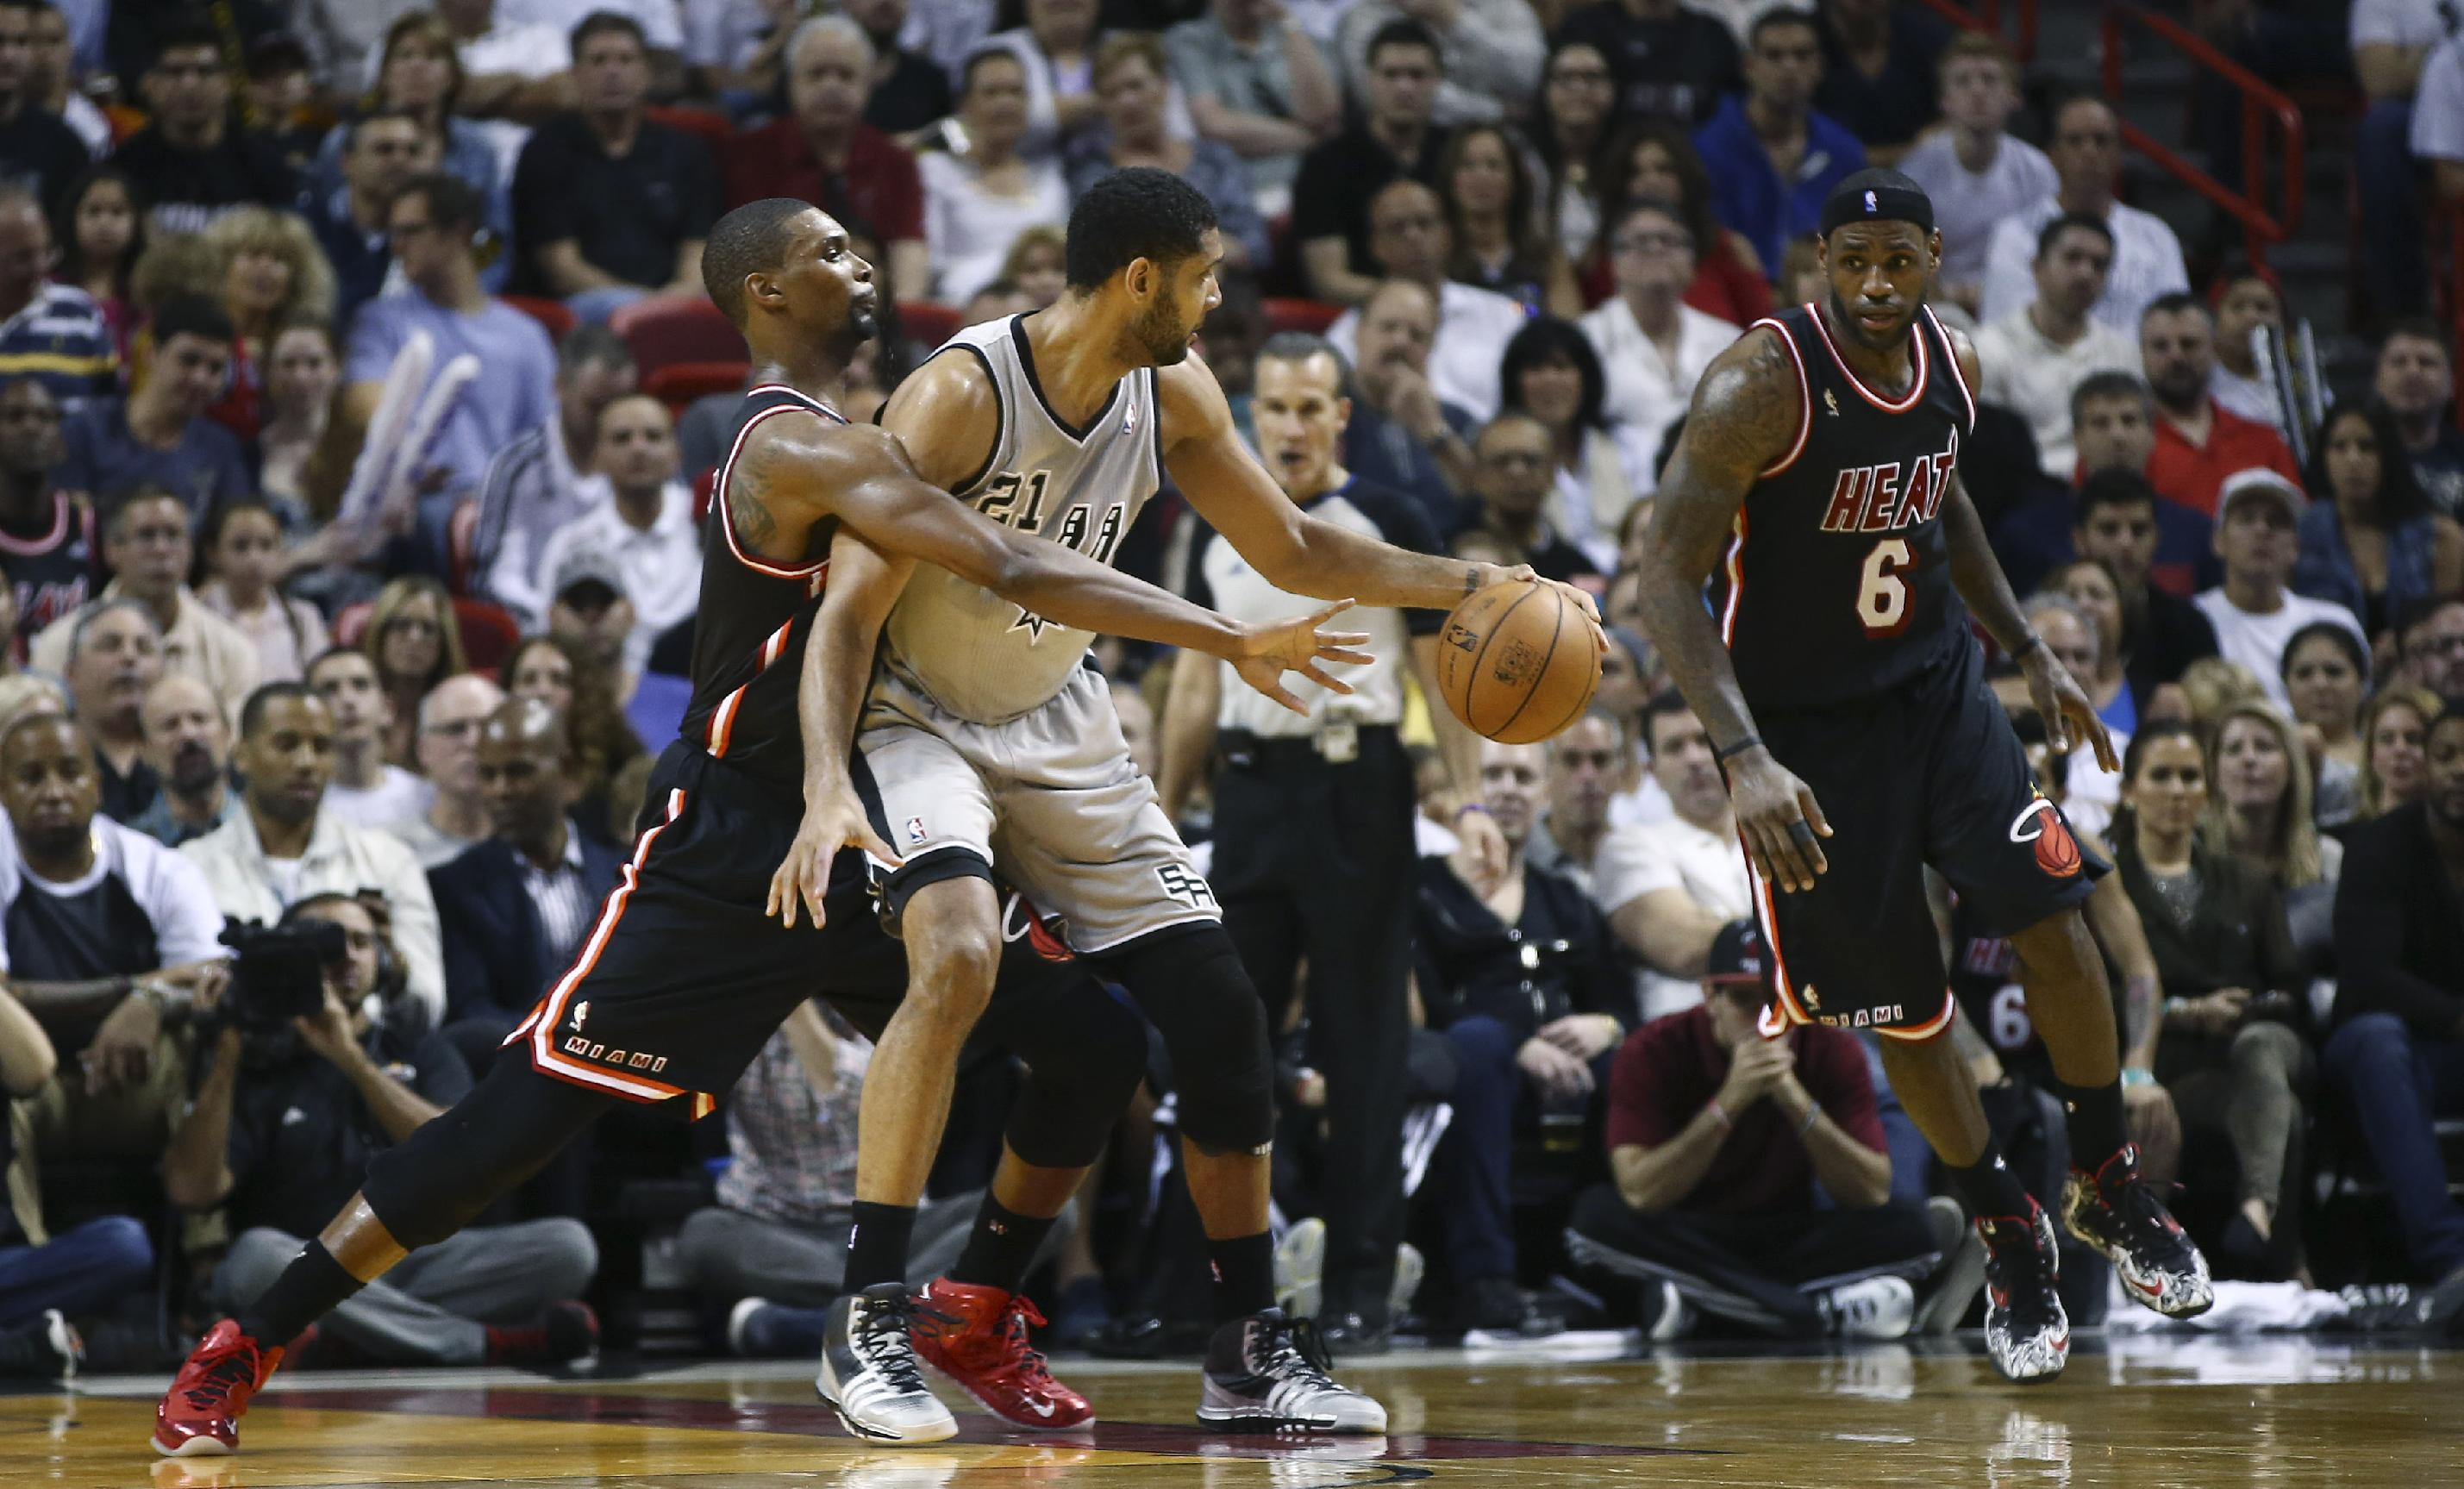 Miami Heat's Chris Bosh, (1) tries to steal the ball from San Antonio Spurs' Tim Duncan (21) as LeBron James (60 applies pressure during the second half of a NBA basketball game in Miami, Sunday, Jan. 26, 2014. The Heat won 113-101